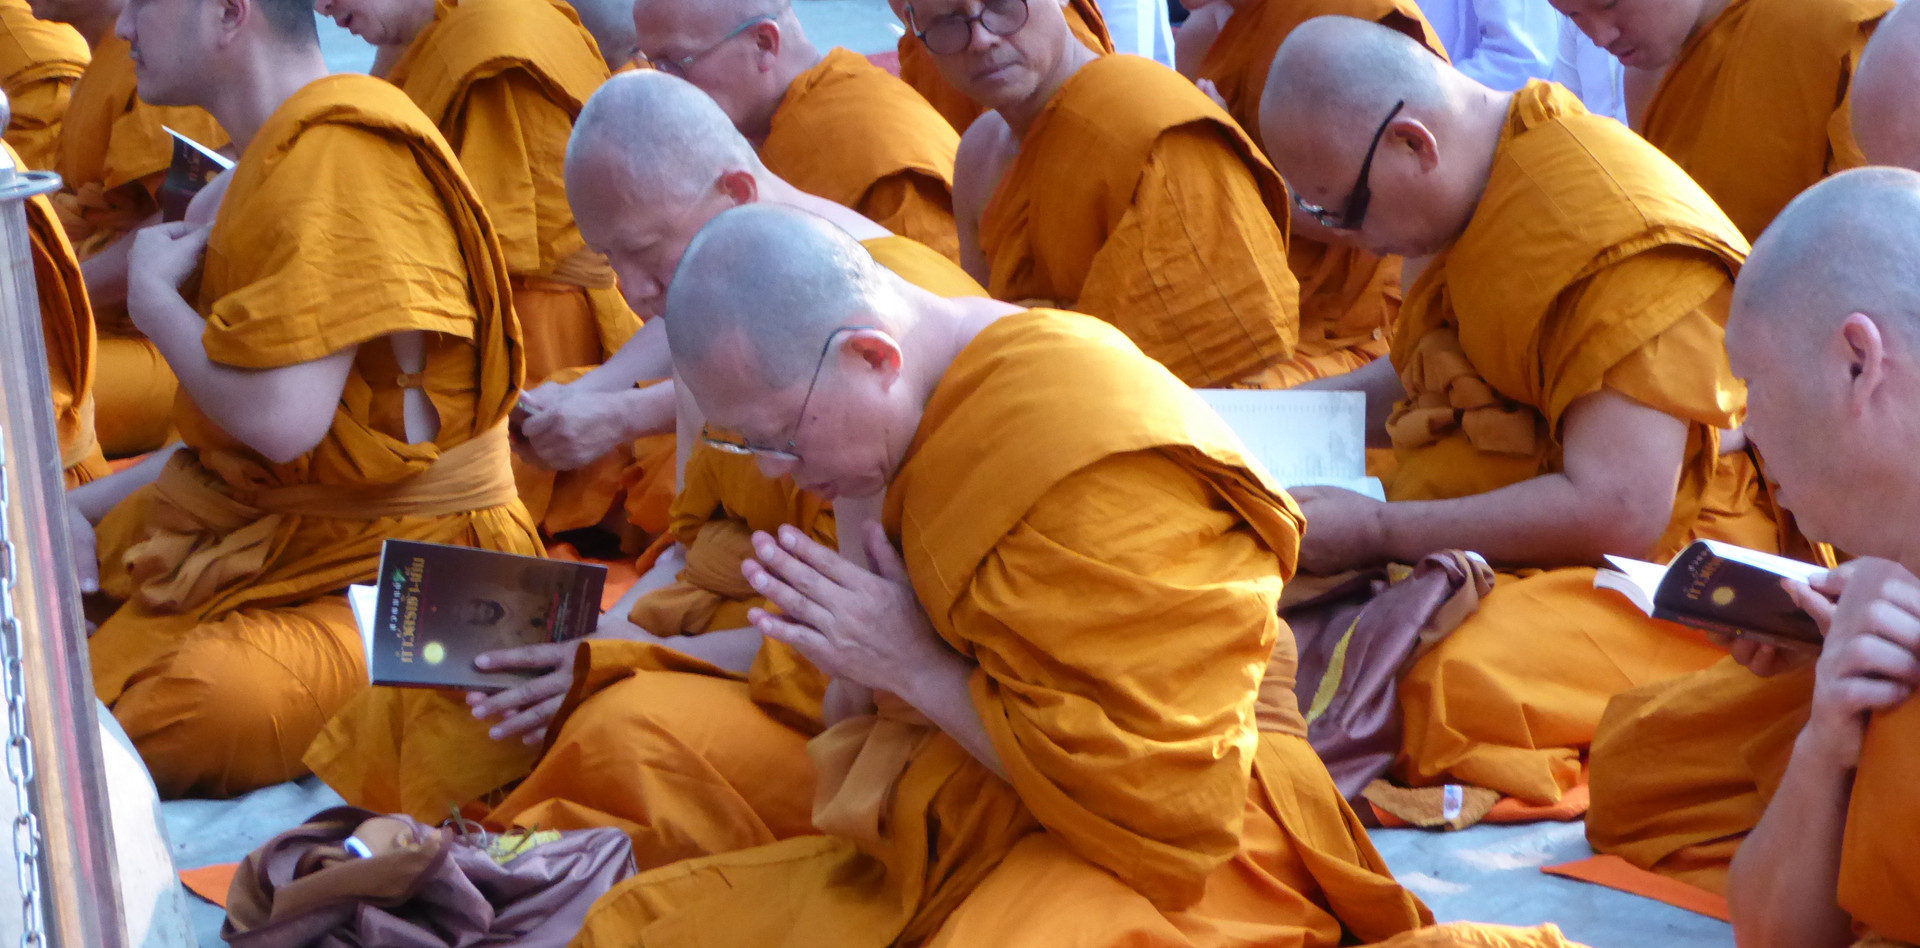 Thai devotees praying